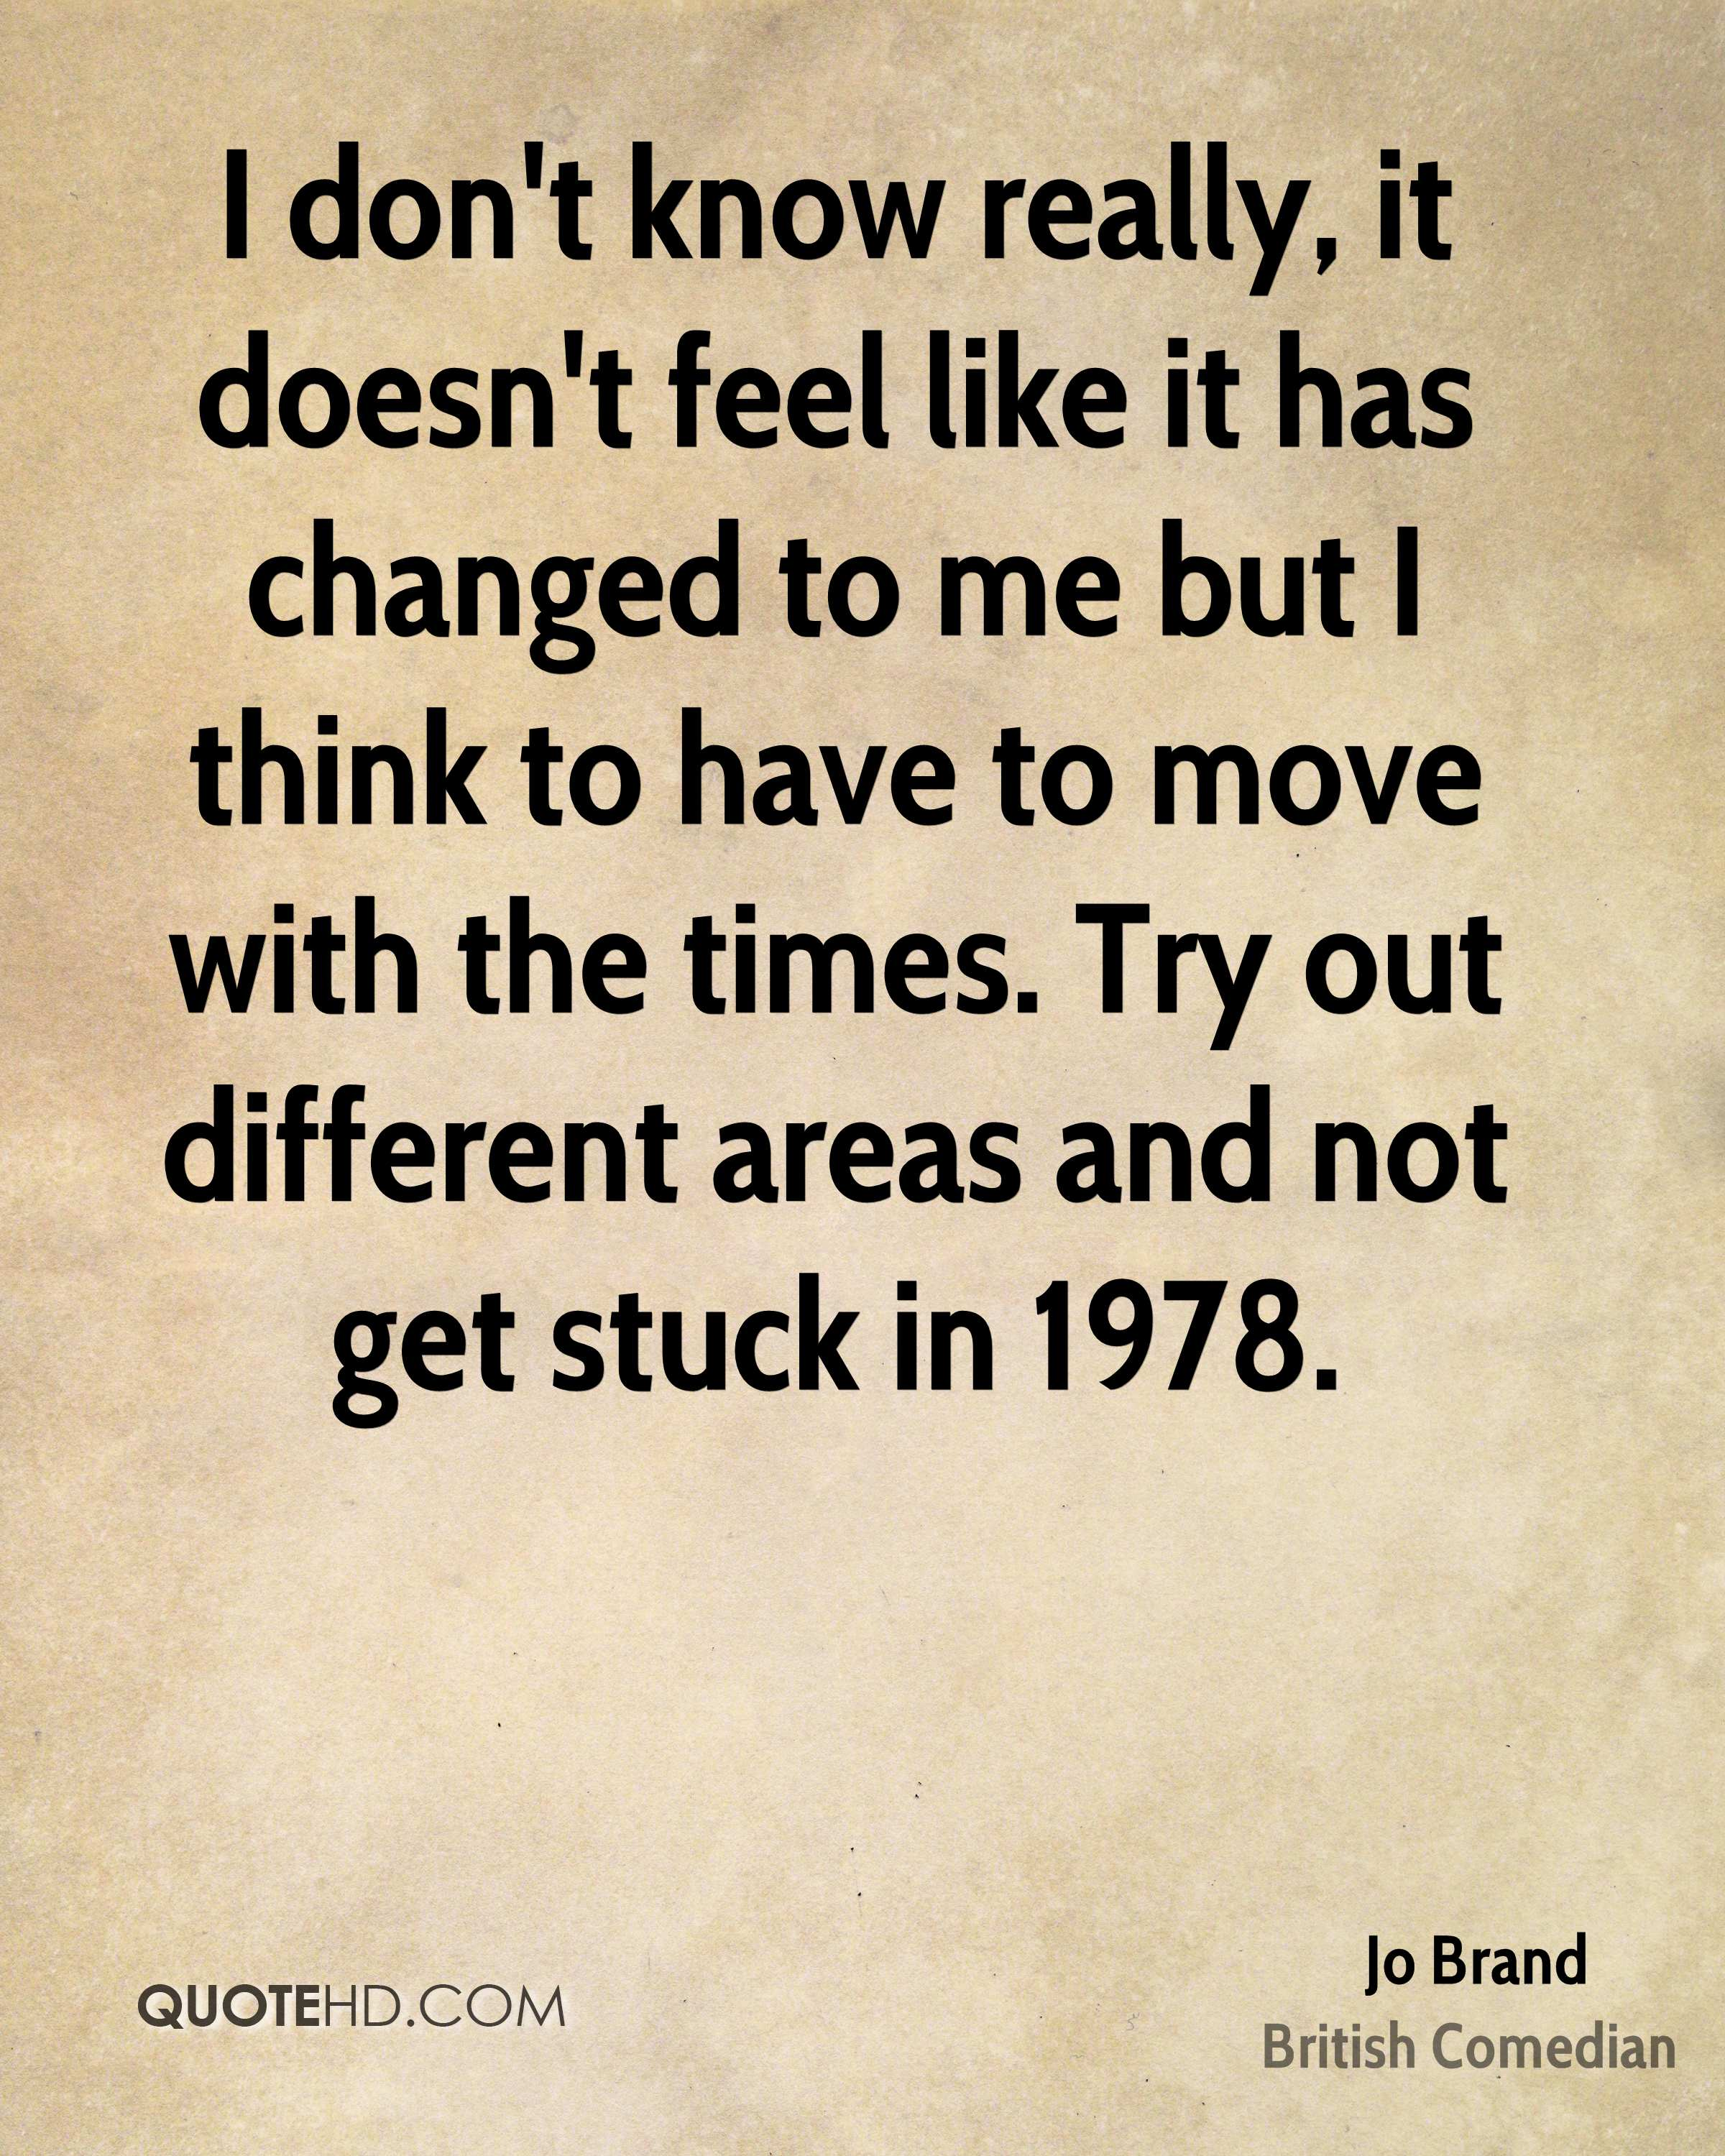 I don't know really, it doesn't feel like it has changed to me but I think to have to move with the times. Try out different areas and not get stuck in 1978.